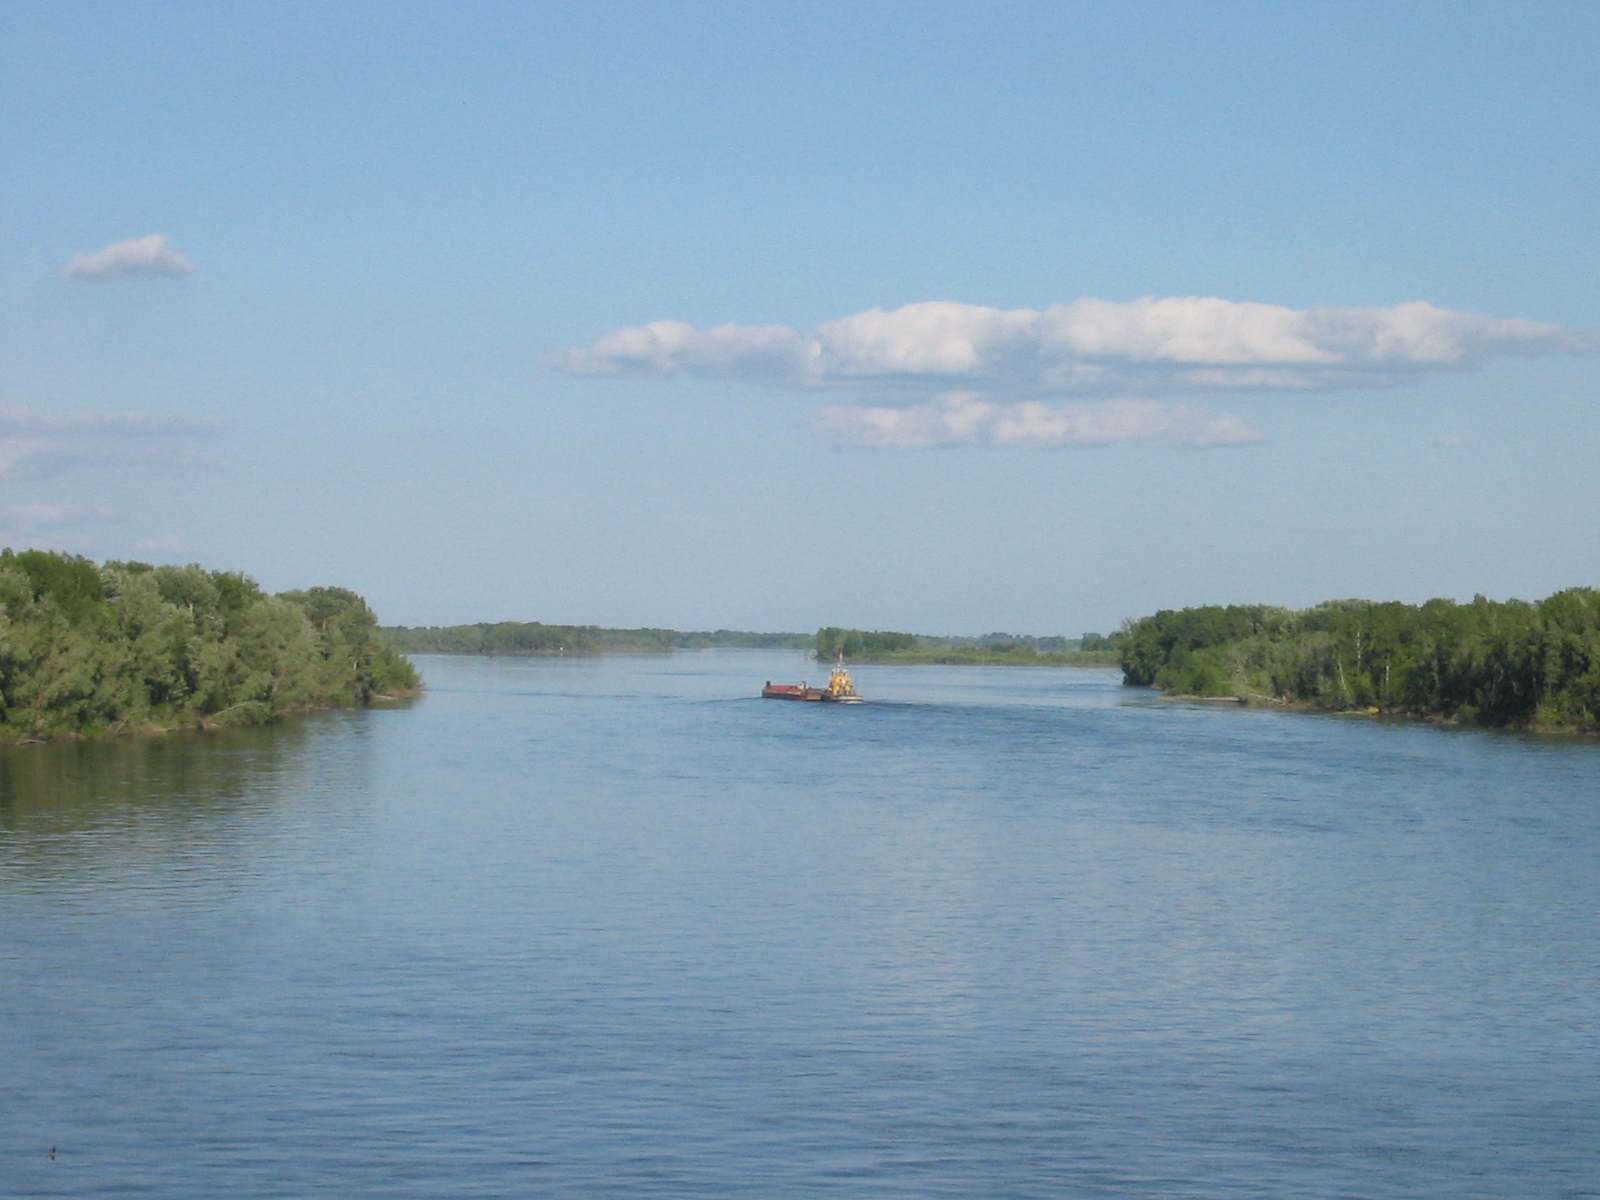 File:Ob river -a.jpg - Wikimedia Commons